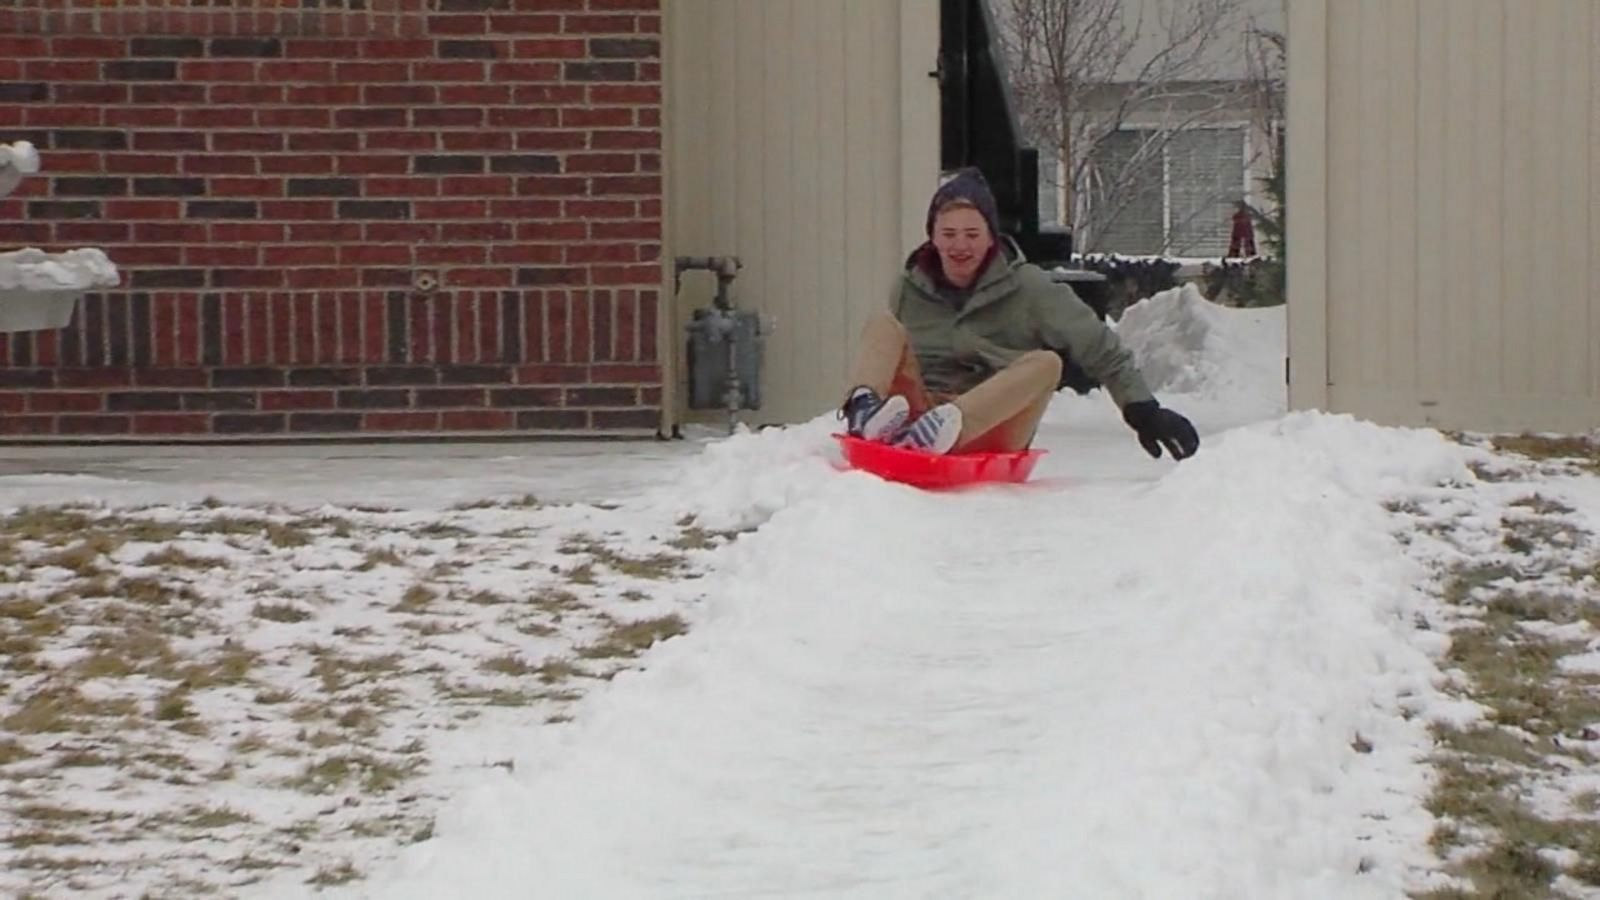 One Utah father, Thomas Williams, created a 300-foot luge run in his own backyard with the help of his 15 kids.